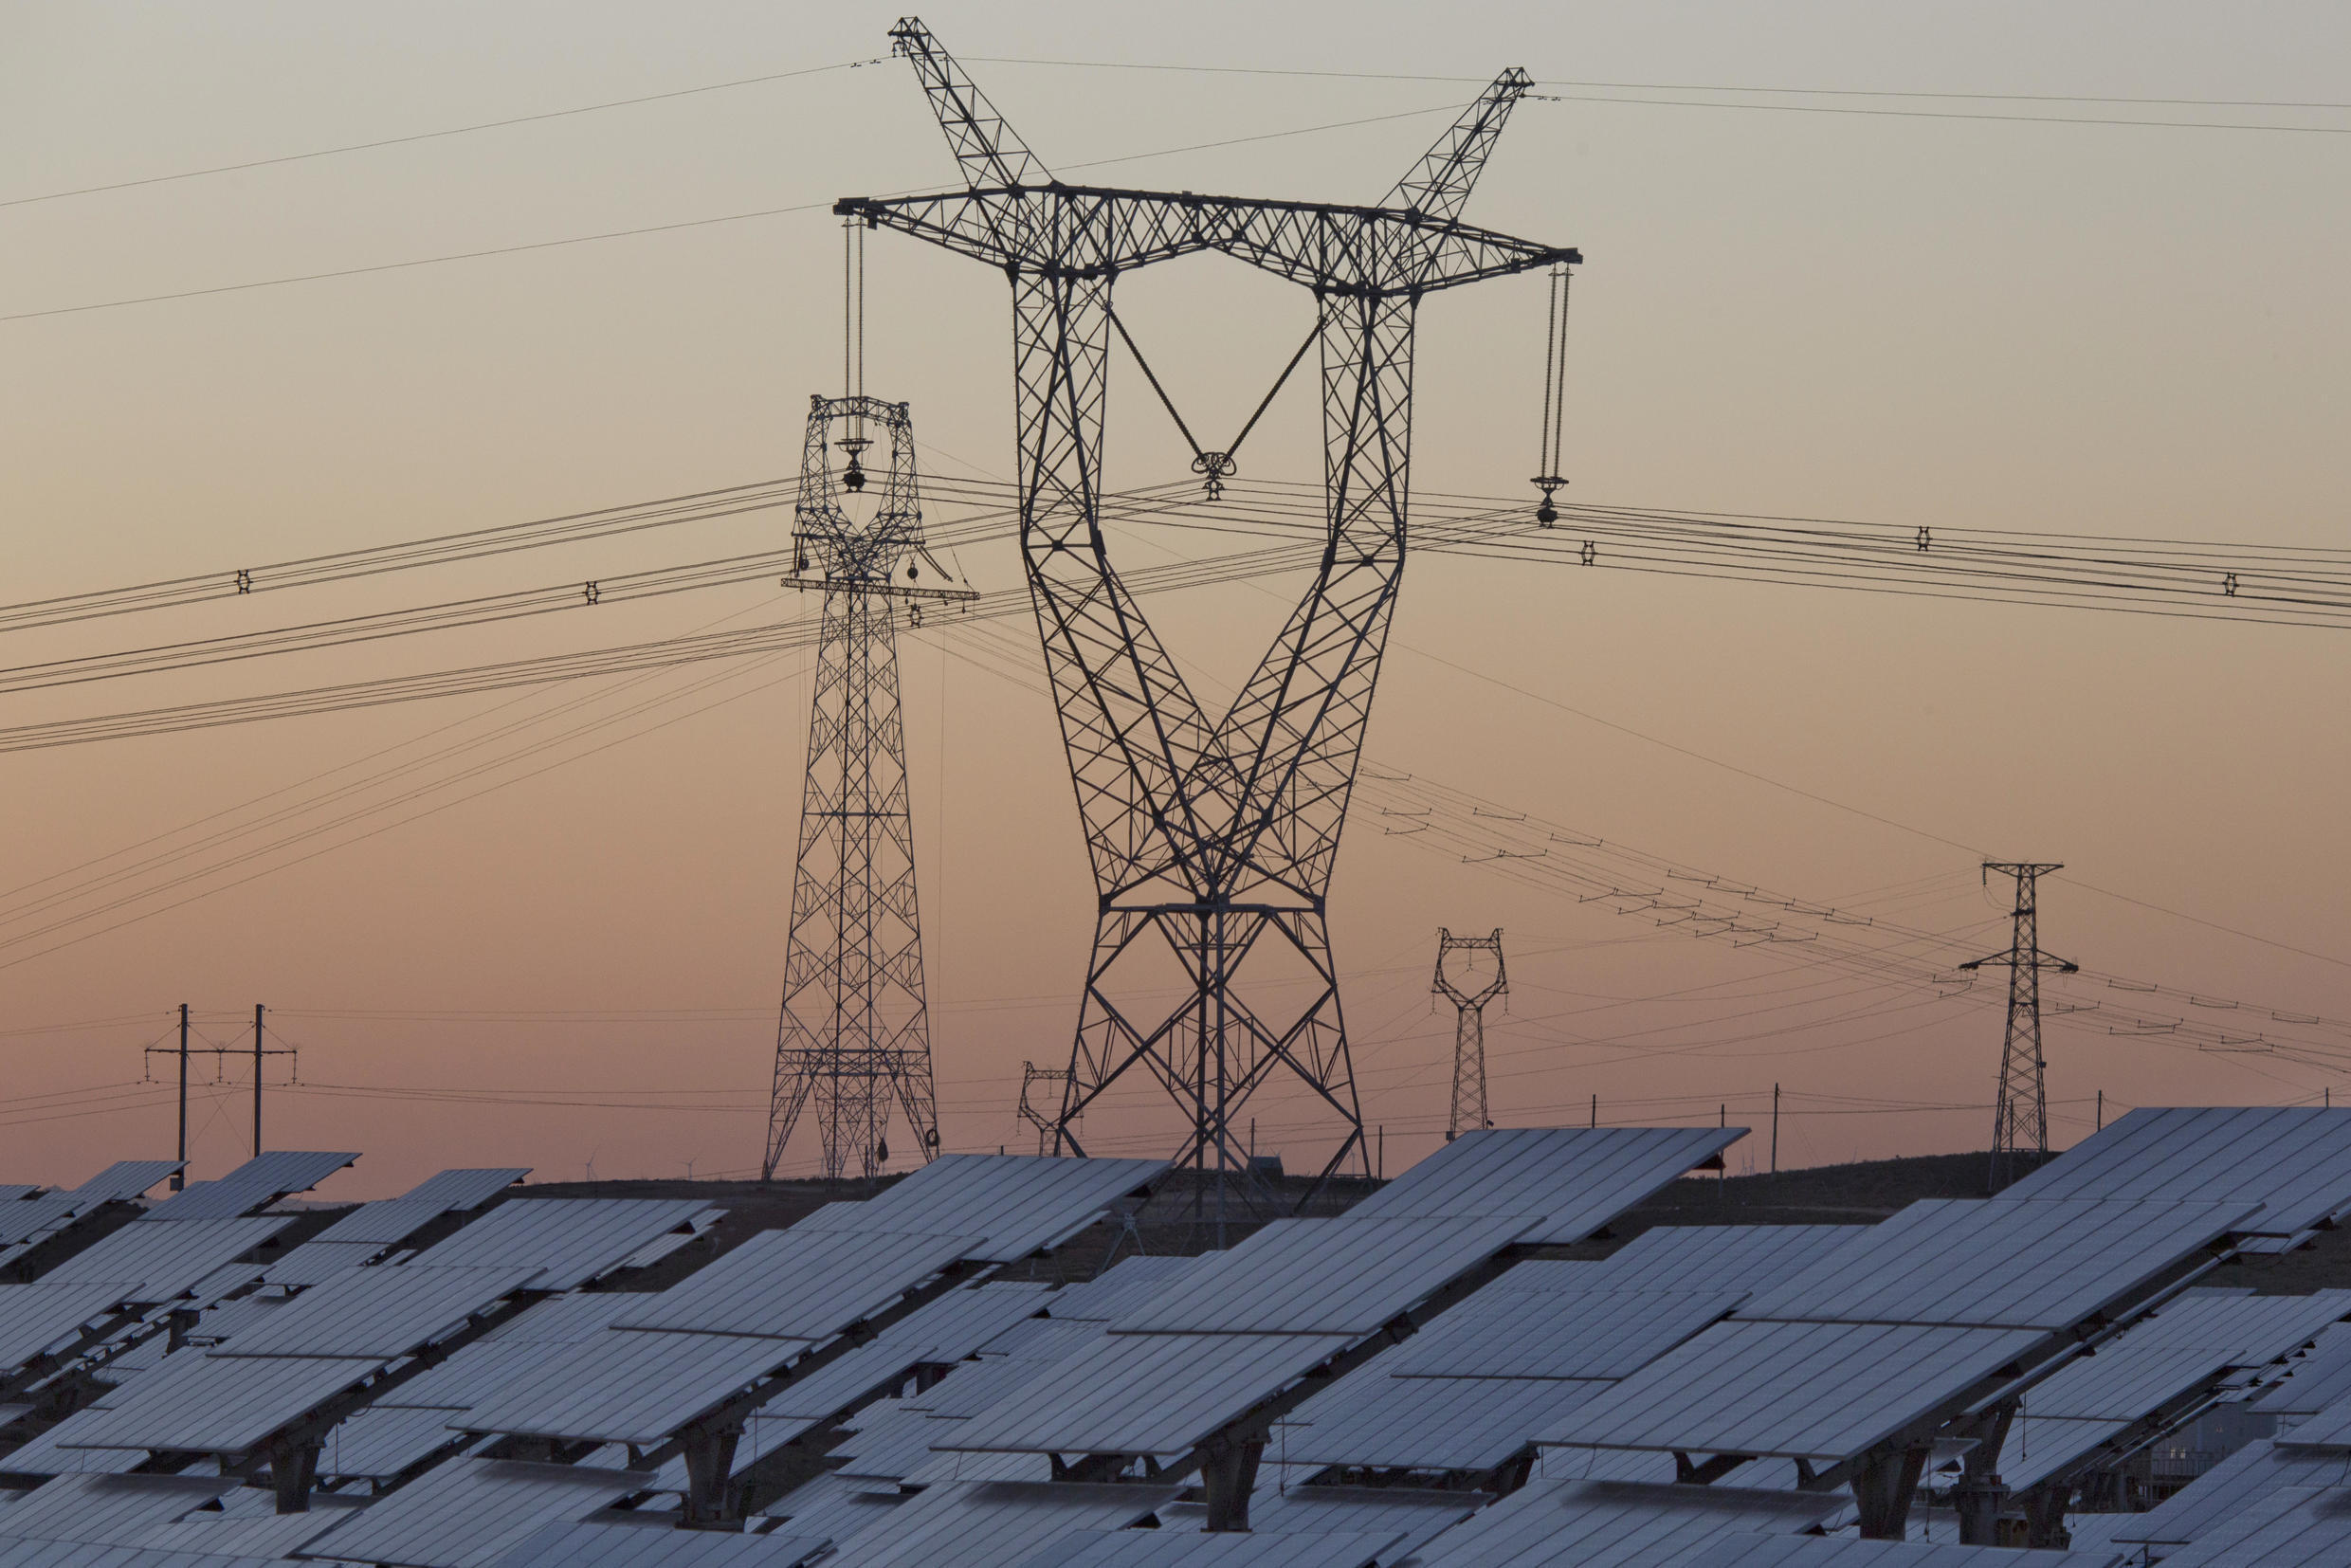 CHINE_ENERGIE RENOUVELABLE